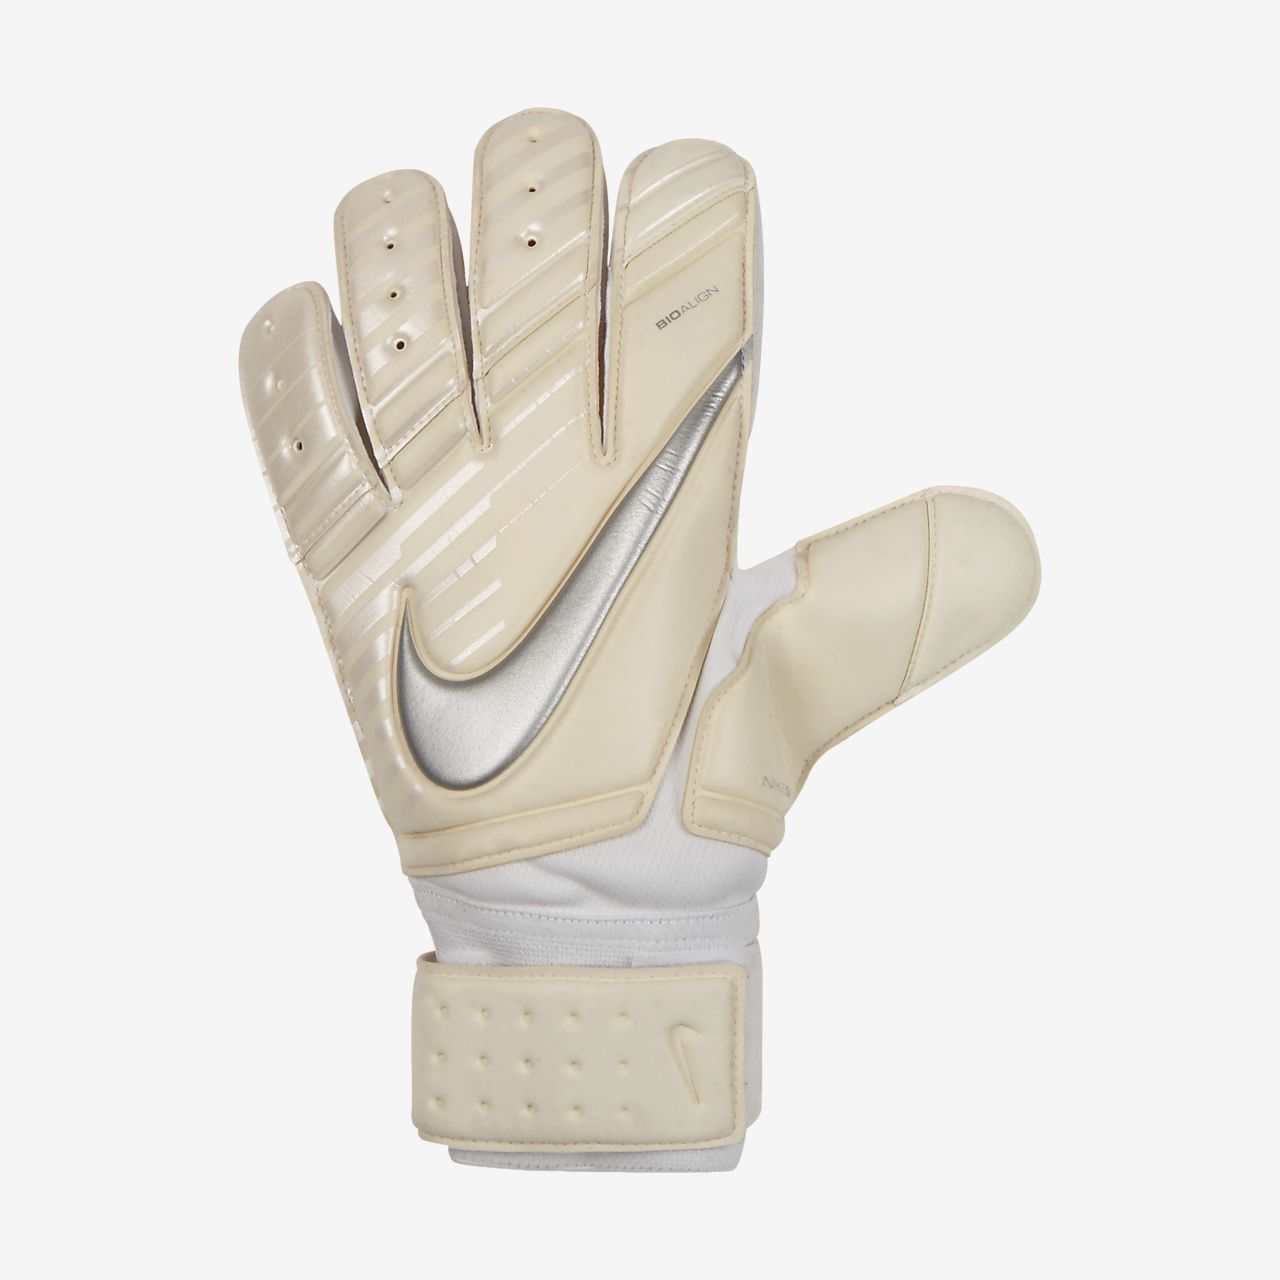 Nike Premier Grip3 Goalkeeper keeperhansker